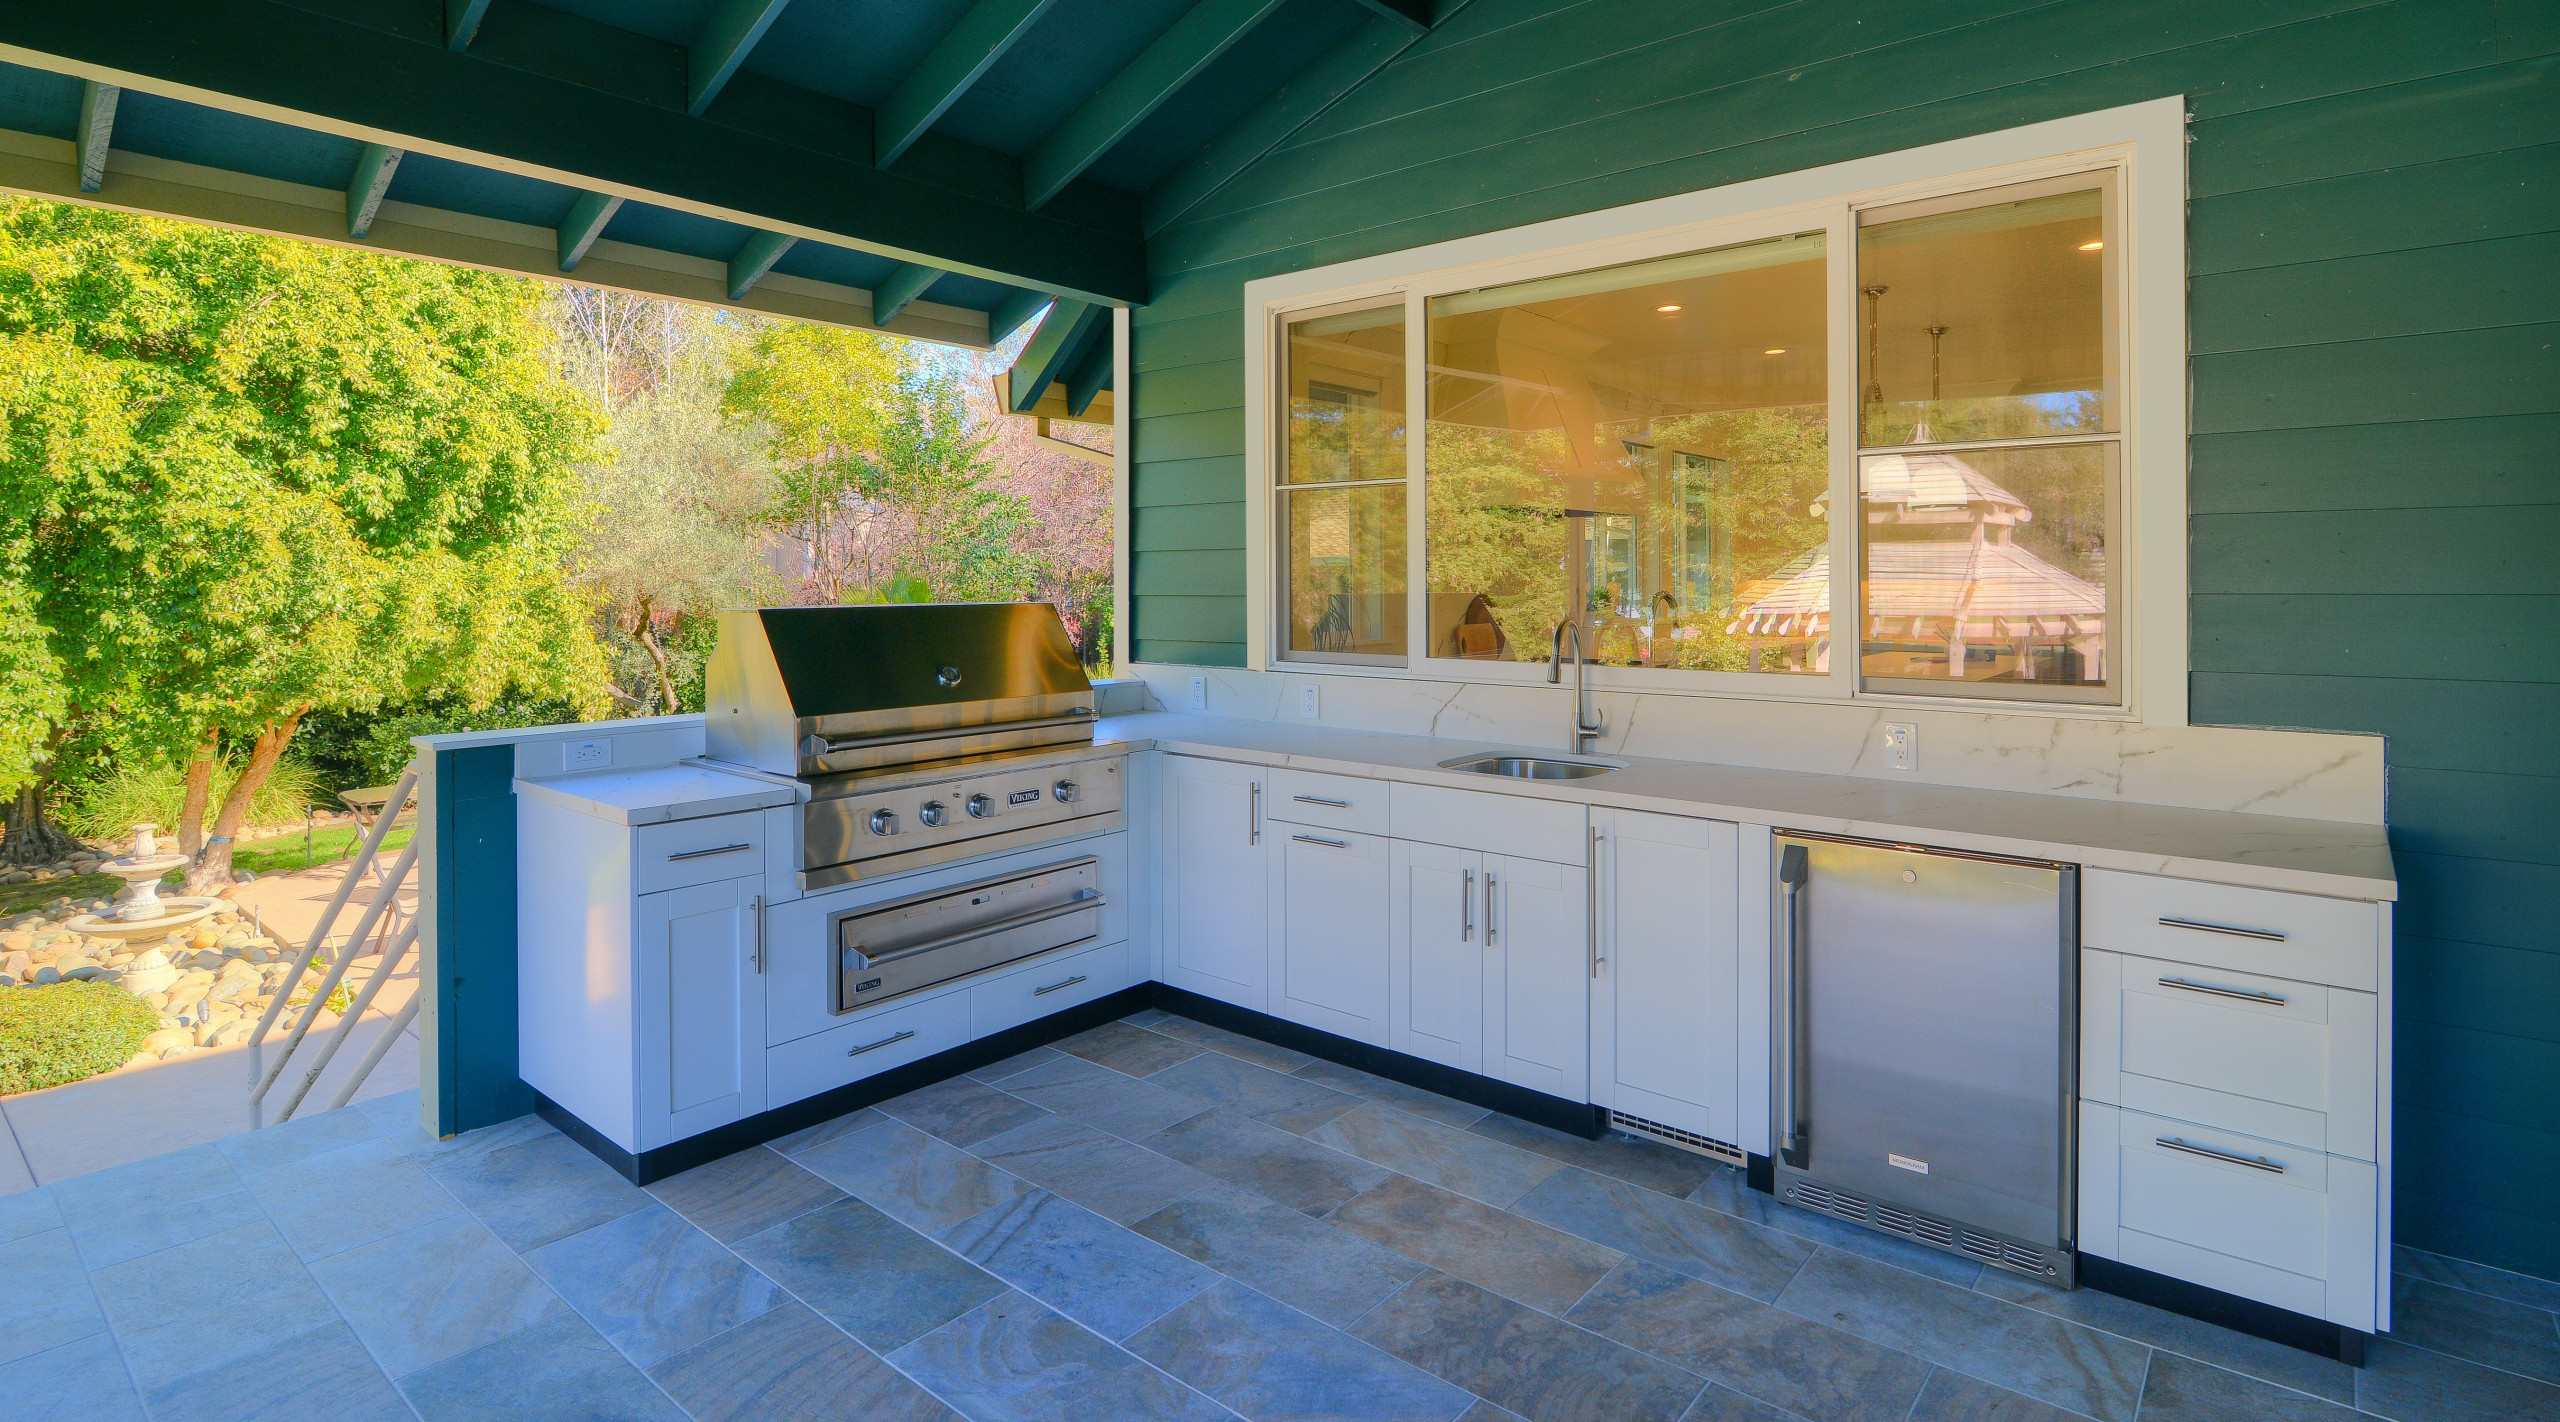 Fair Oaks Deck Remodel and Kitchenette Addition